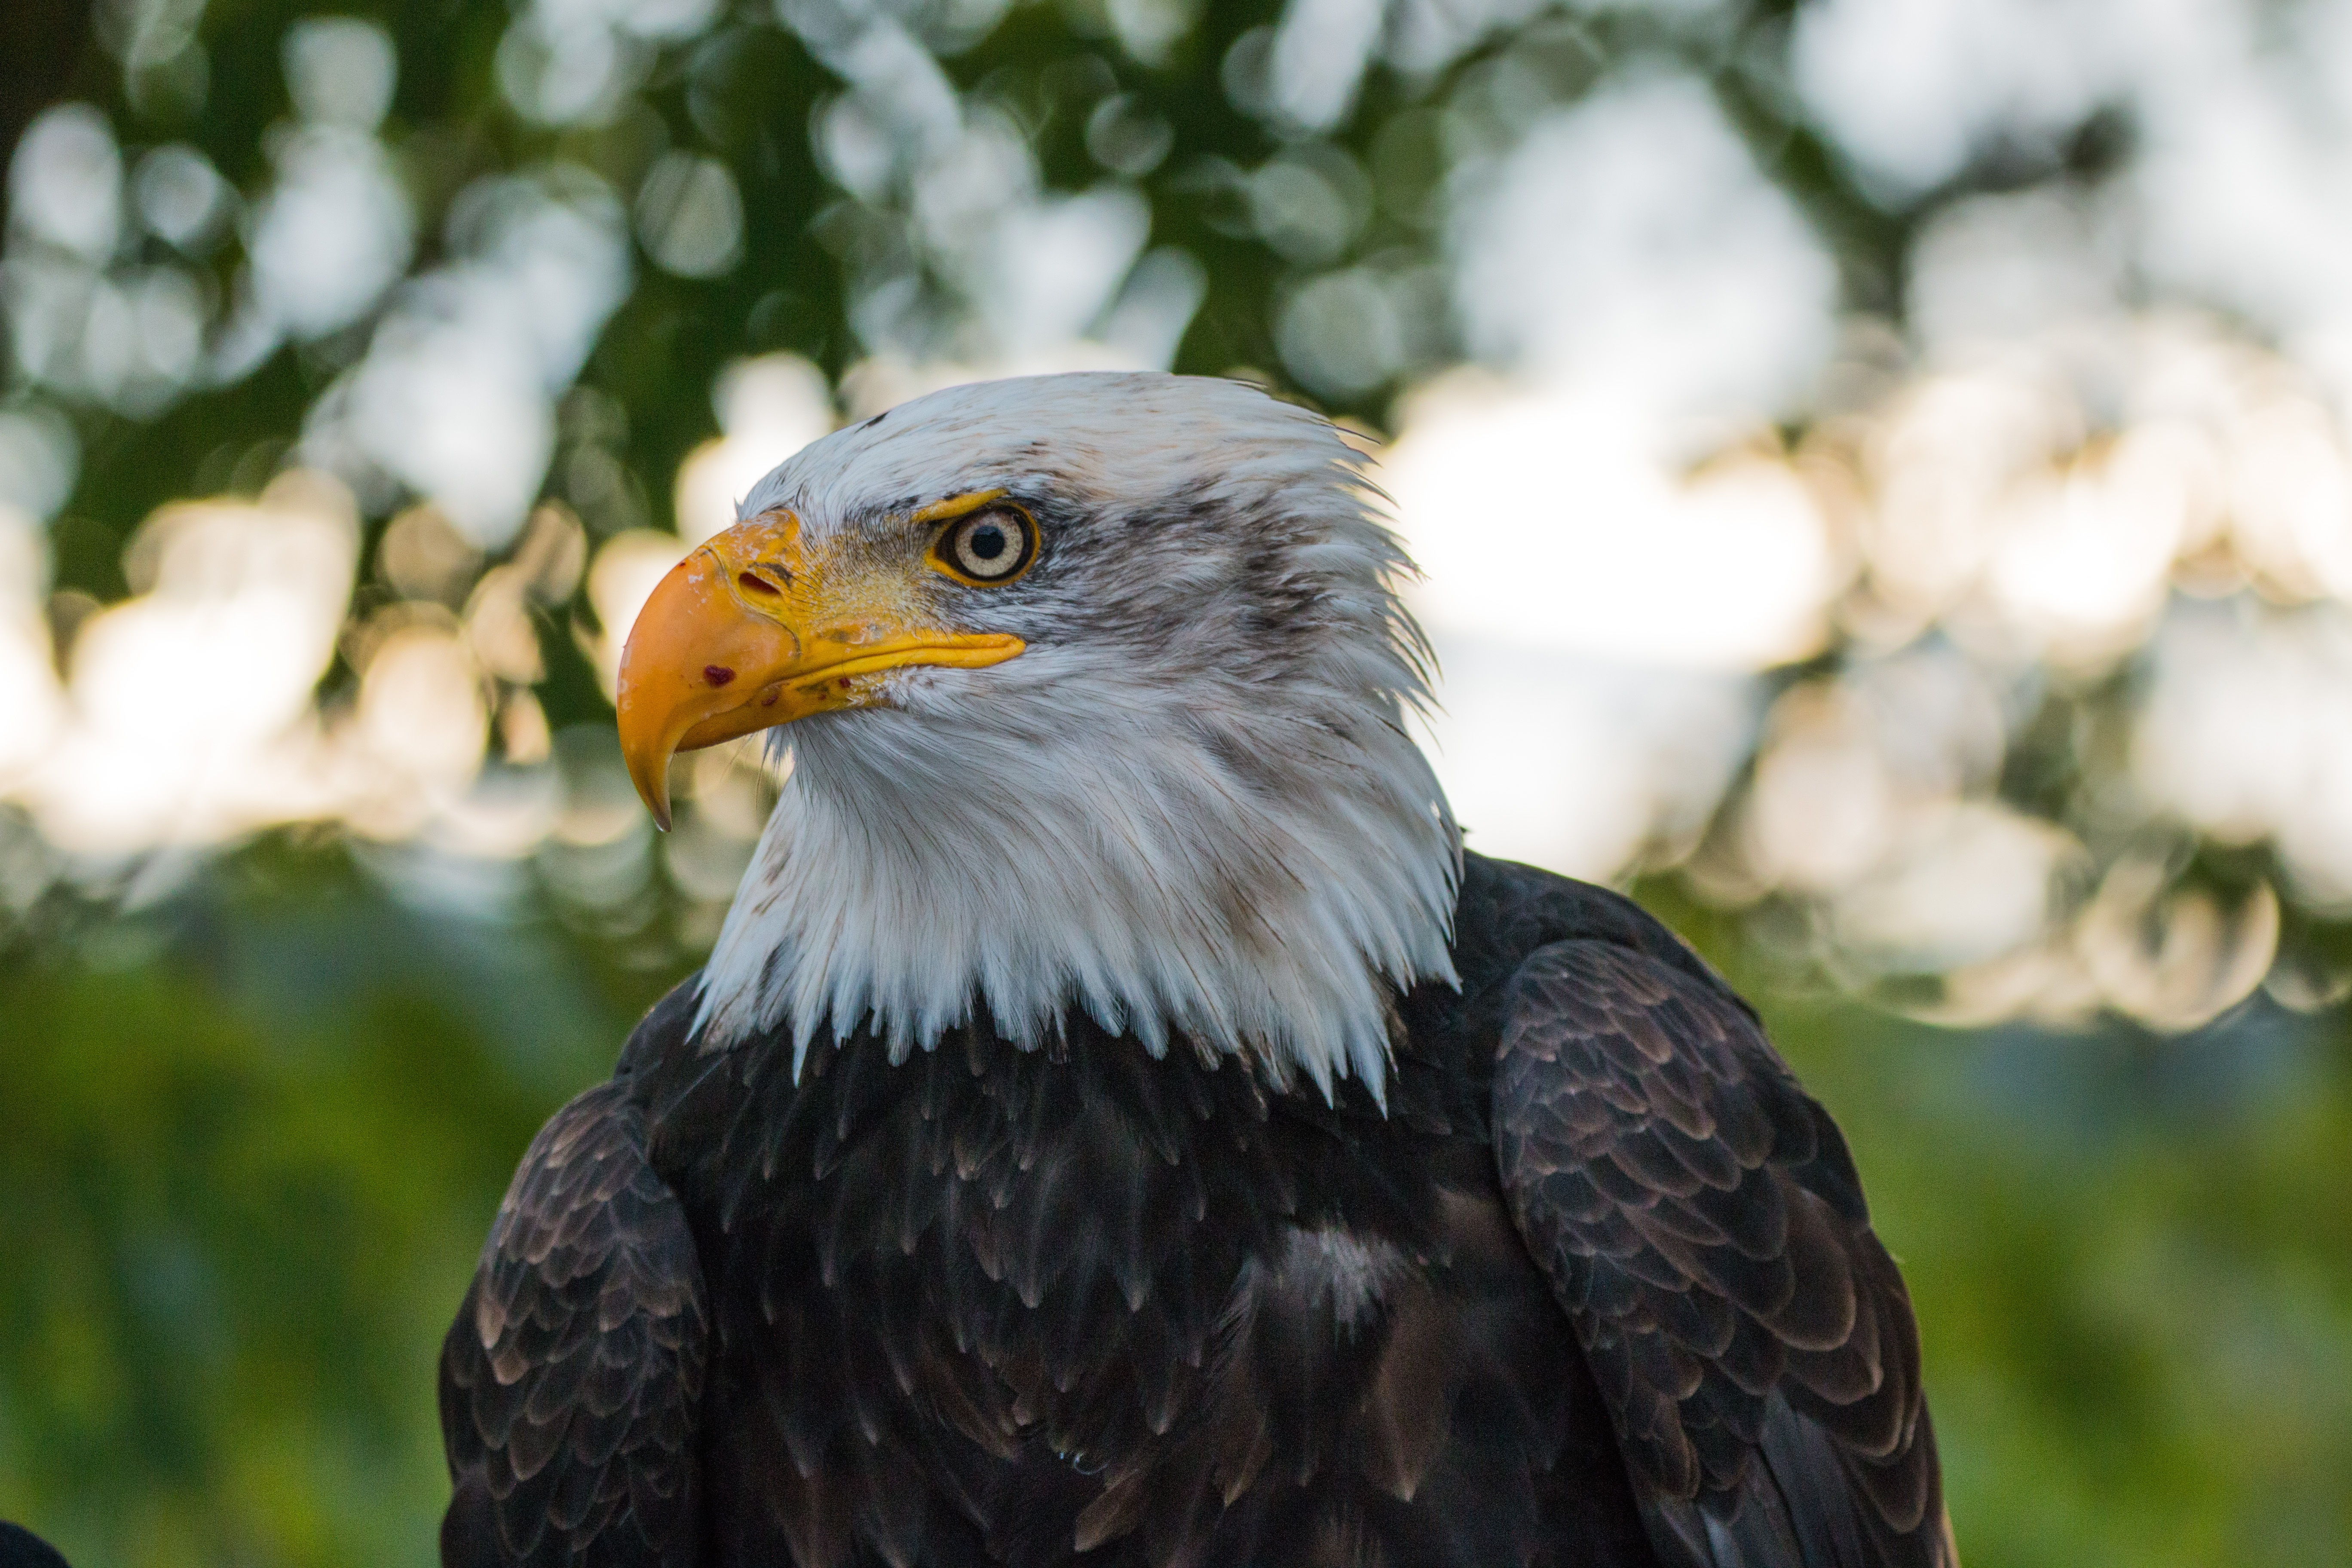 113270 download wallpaper Animals, Bald Eagle, White-Headed Eagle, Eagle, Bird, Predator screensavers and pictures for free